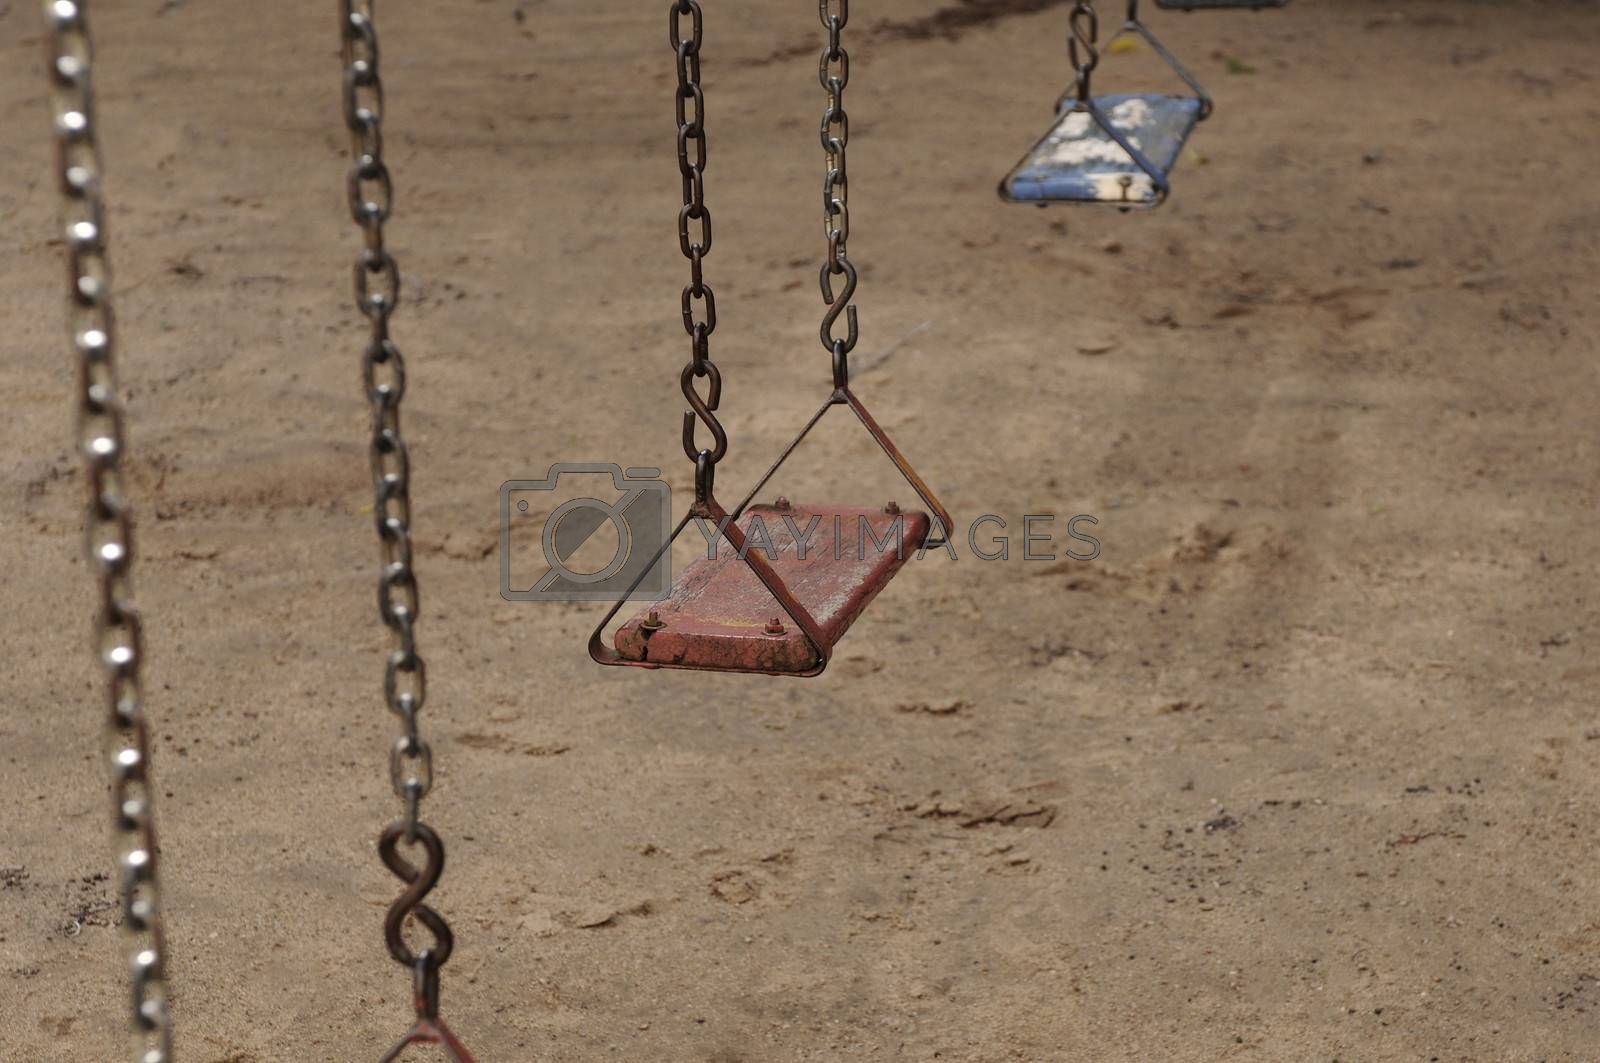 An old swing at abandoned playground